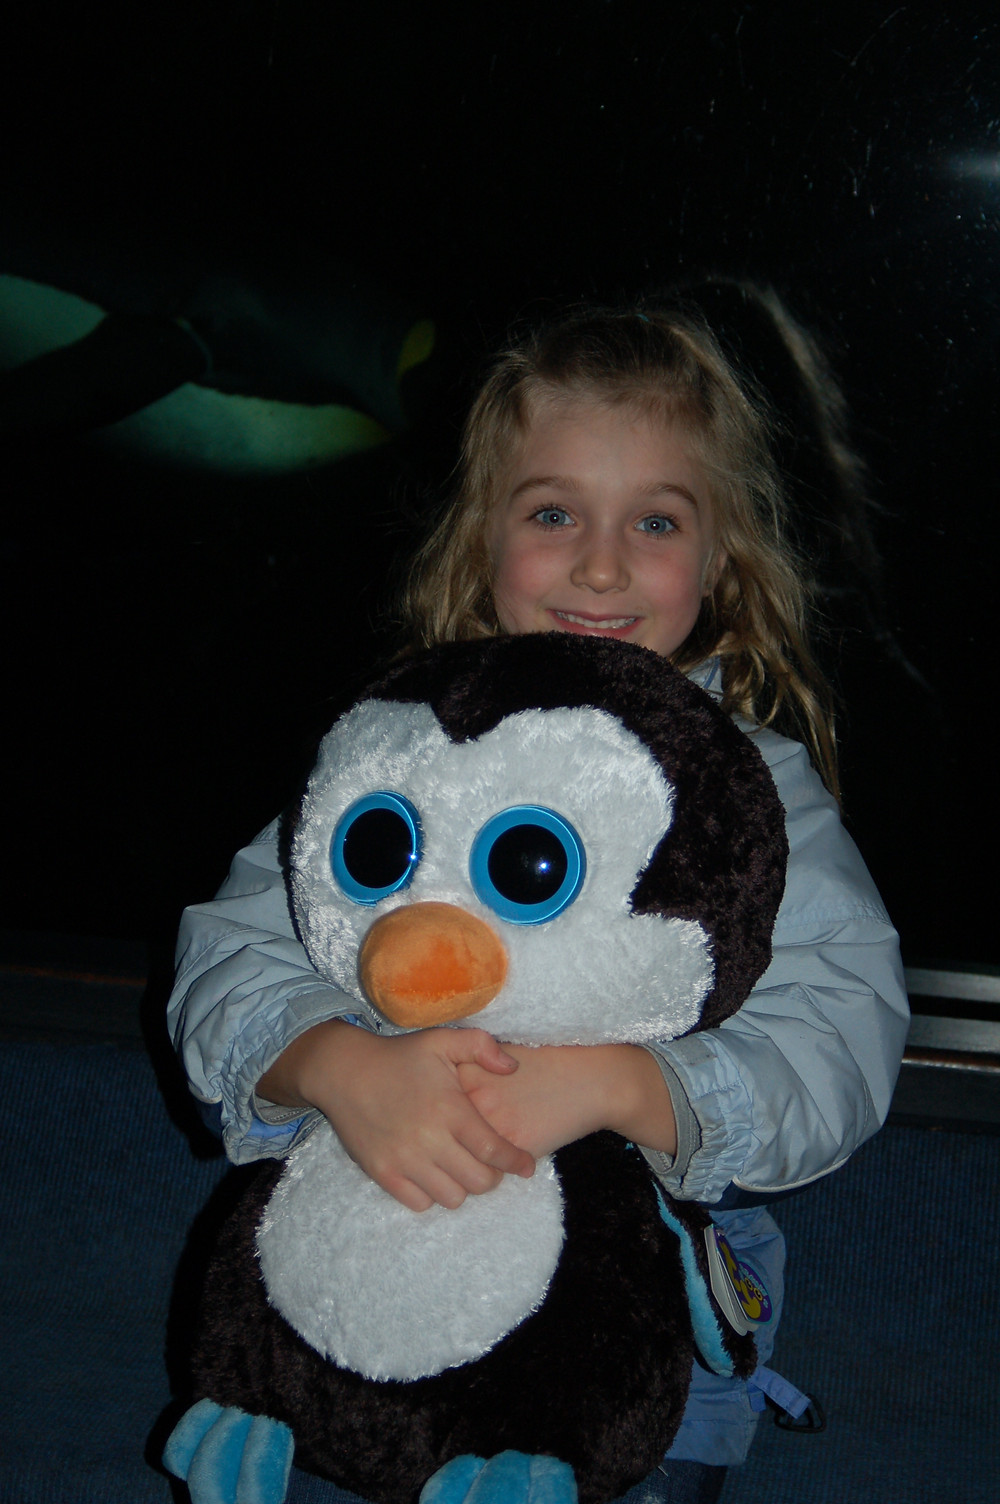 The worst souvenir we ever bought--Mr. Penguin sat on her lap for 20 hours on the road trip back from NYC to MN with 7 people in the mini van.